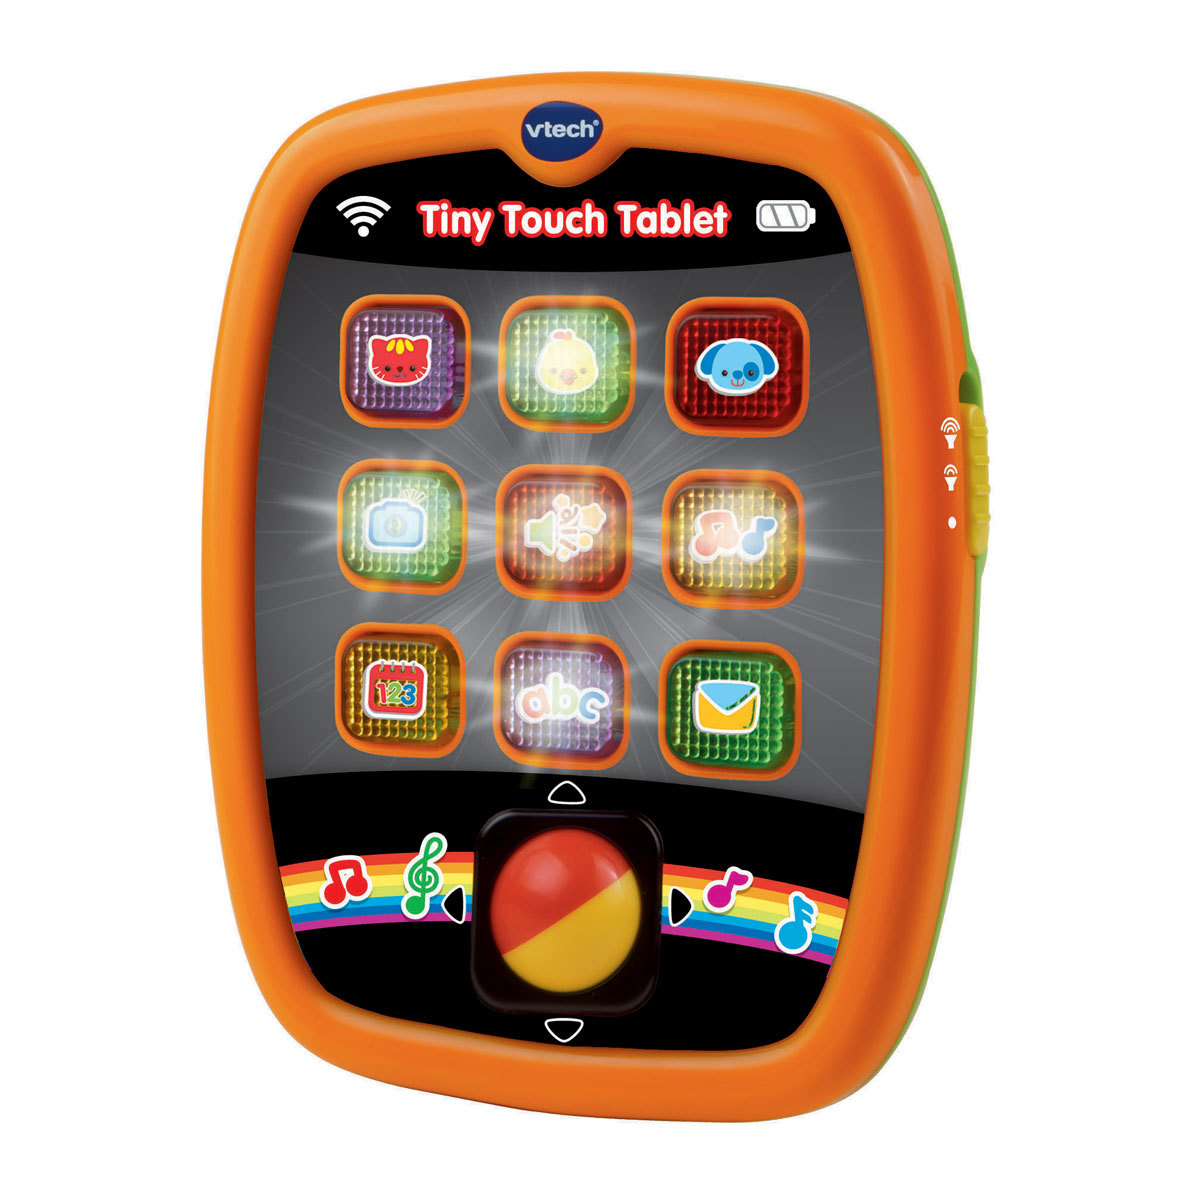 Vtech Baby Tiny Touch Tablet from Early Learning Center